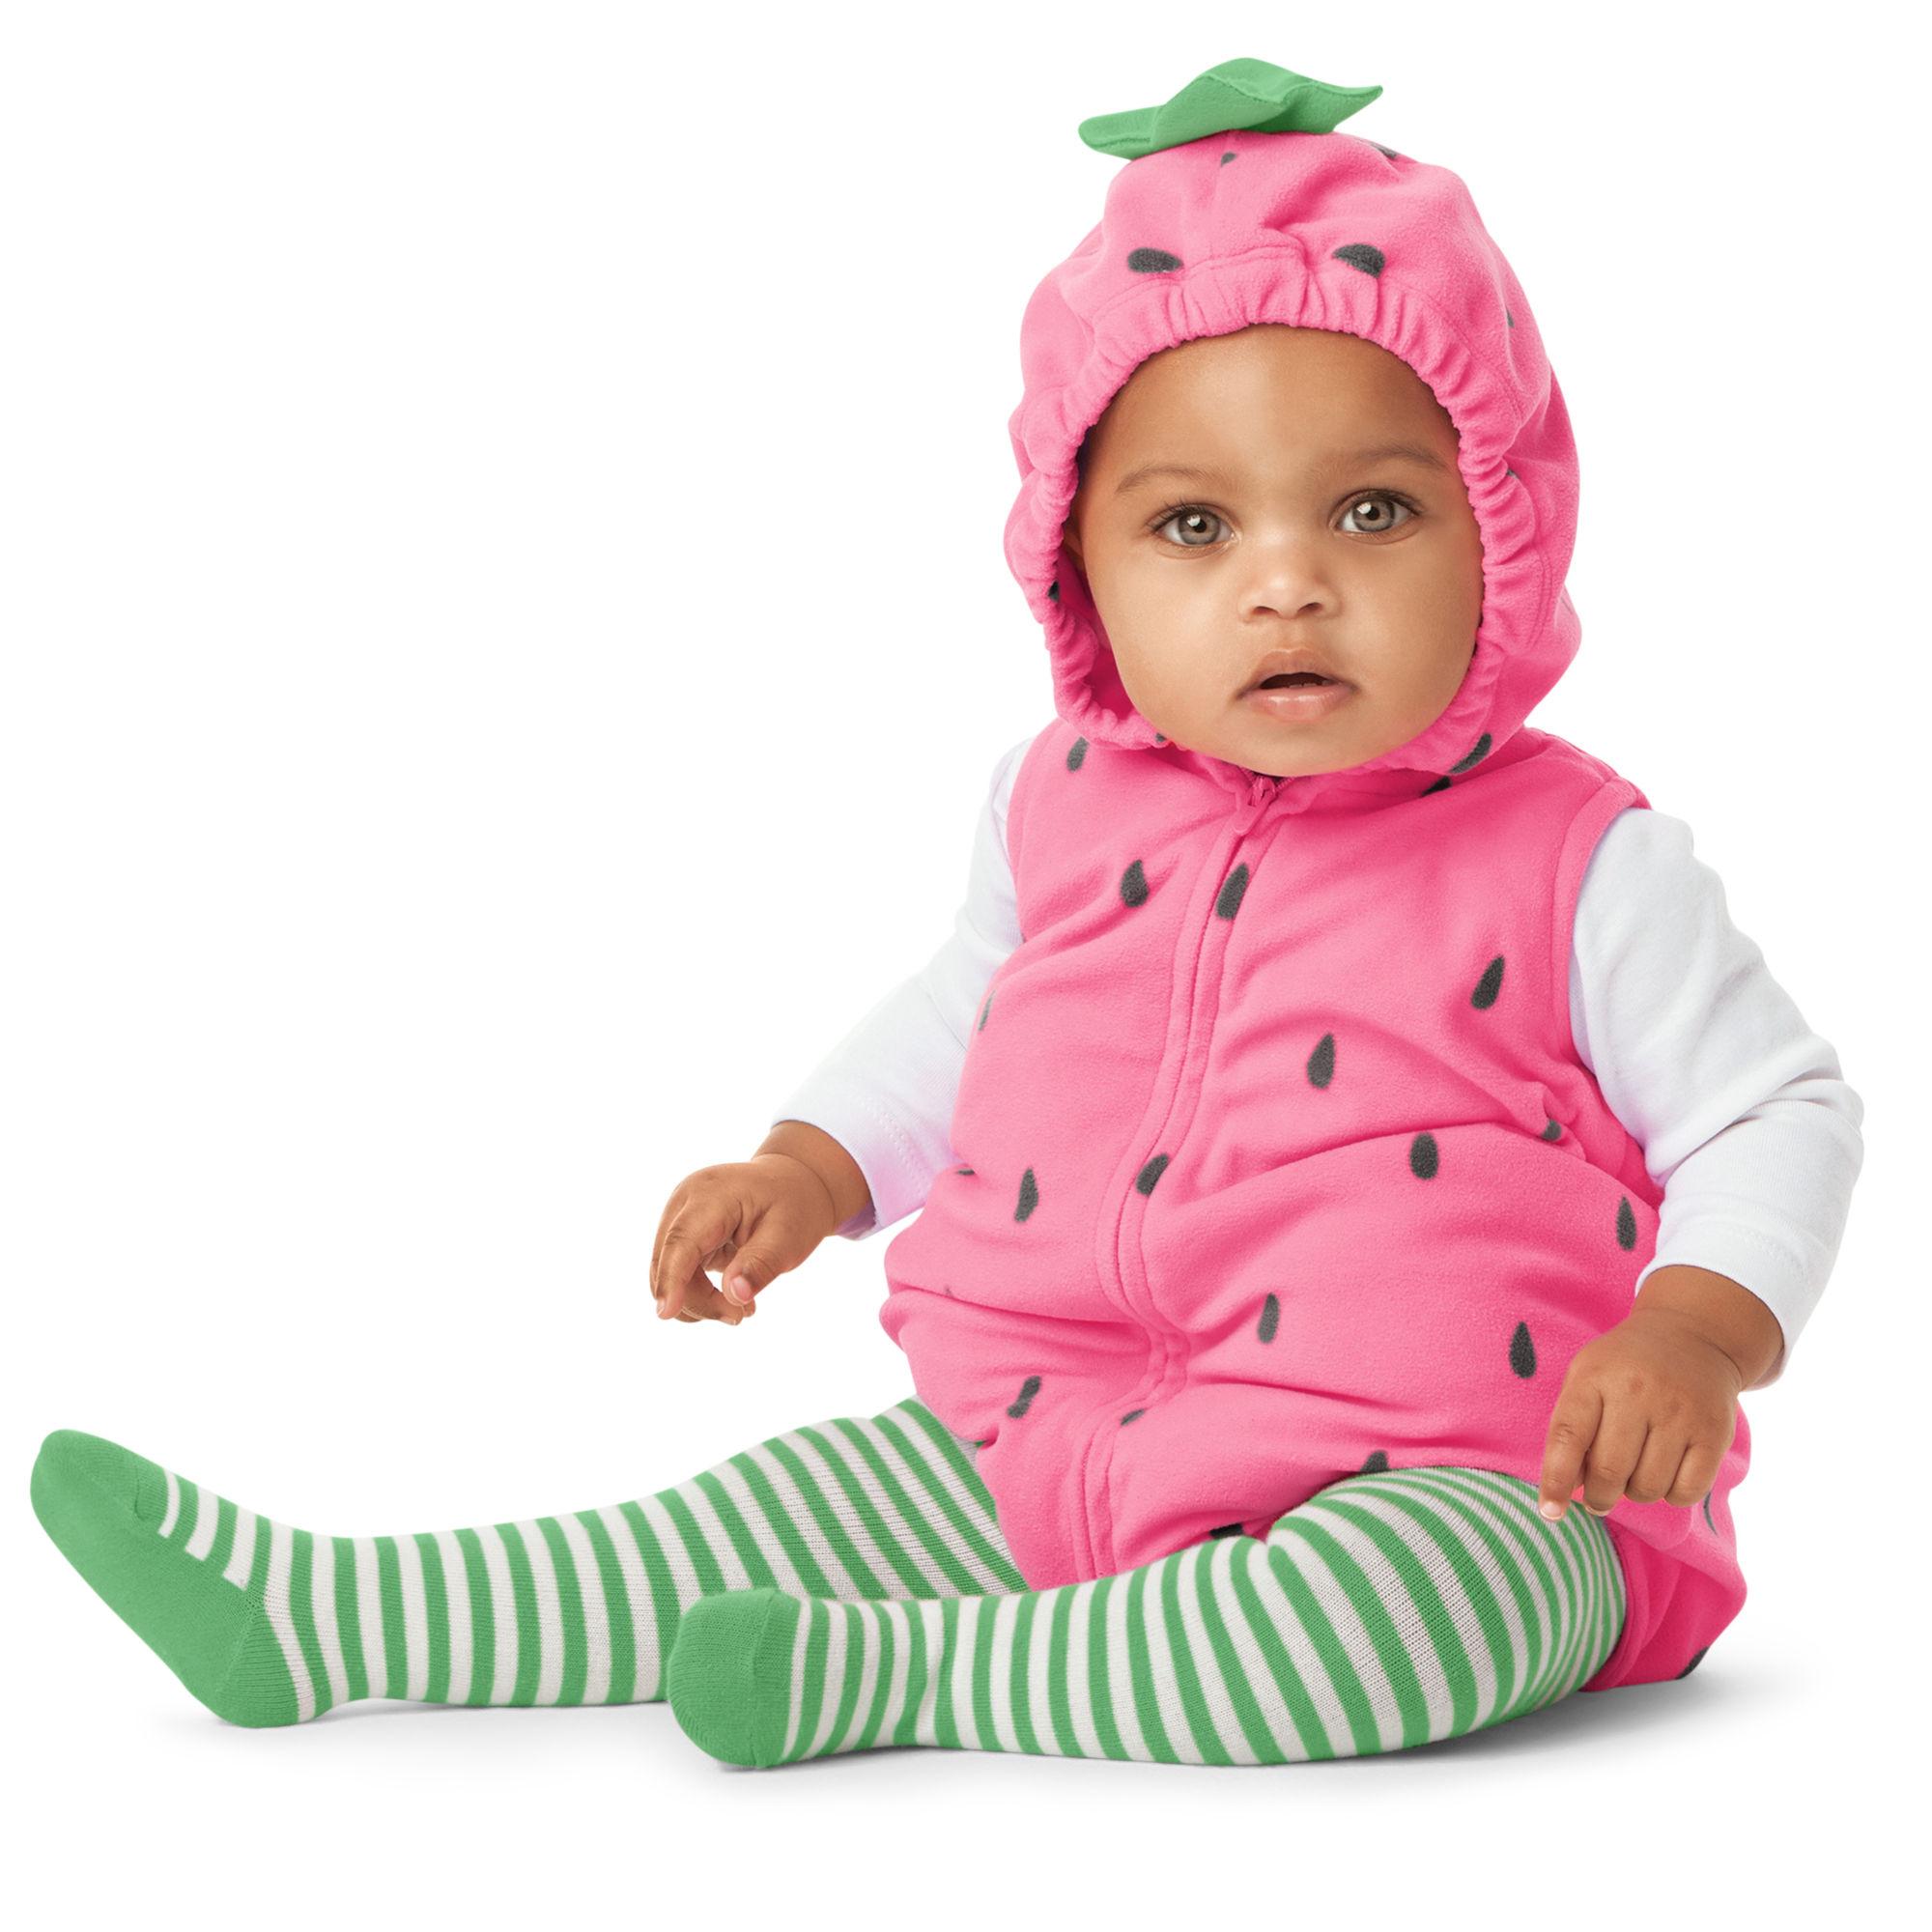 upc 888510967903 - carters 3-6 month bite-sized strawberry halloween